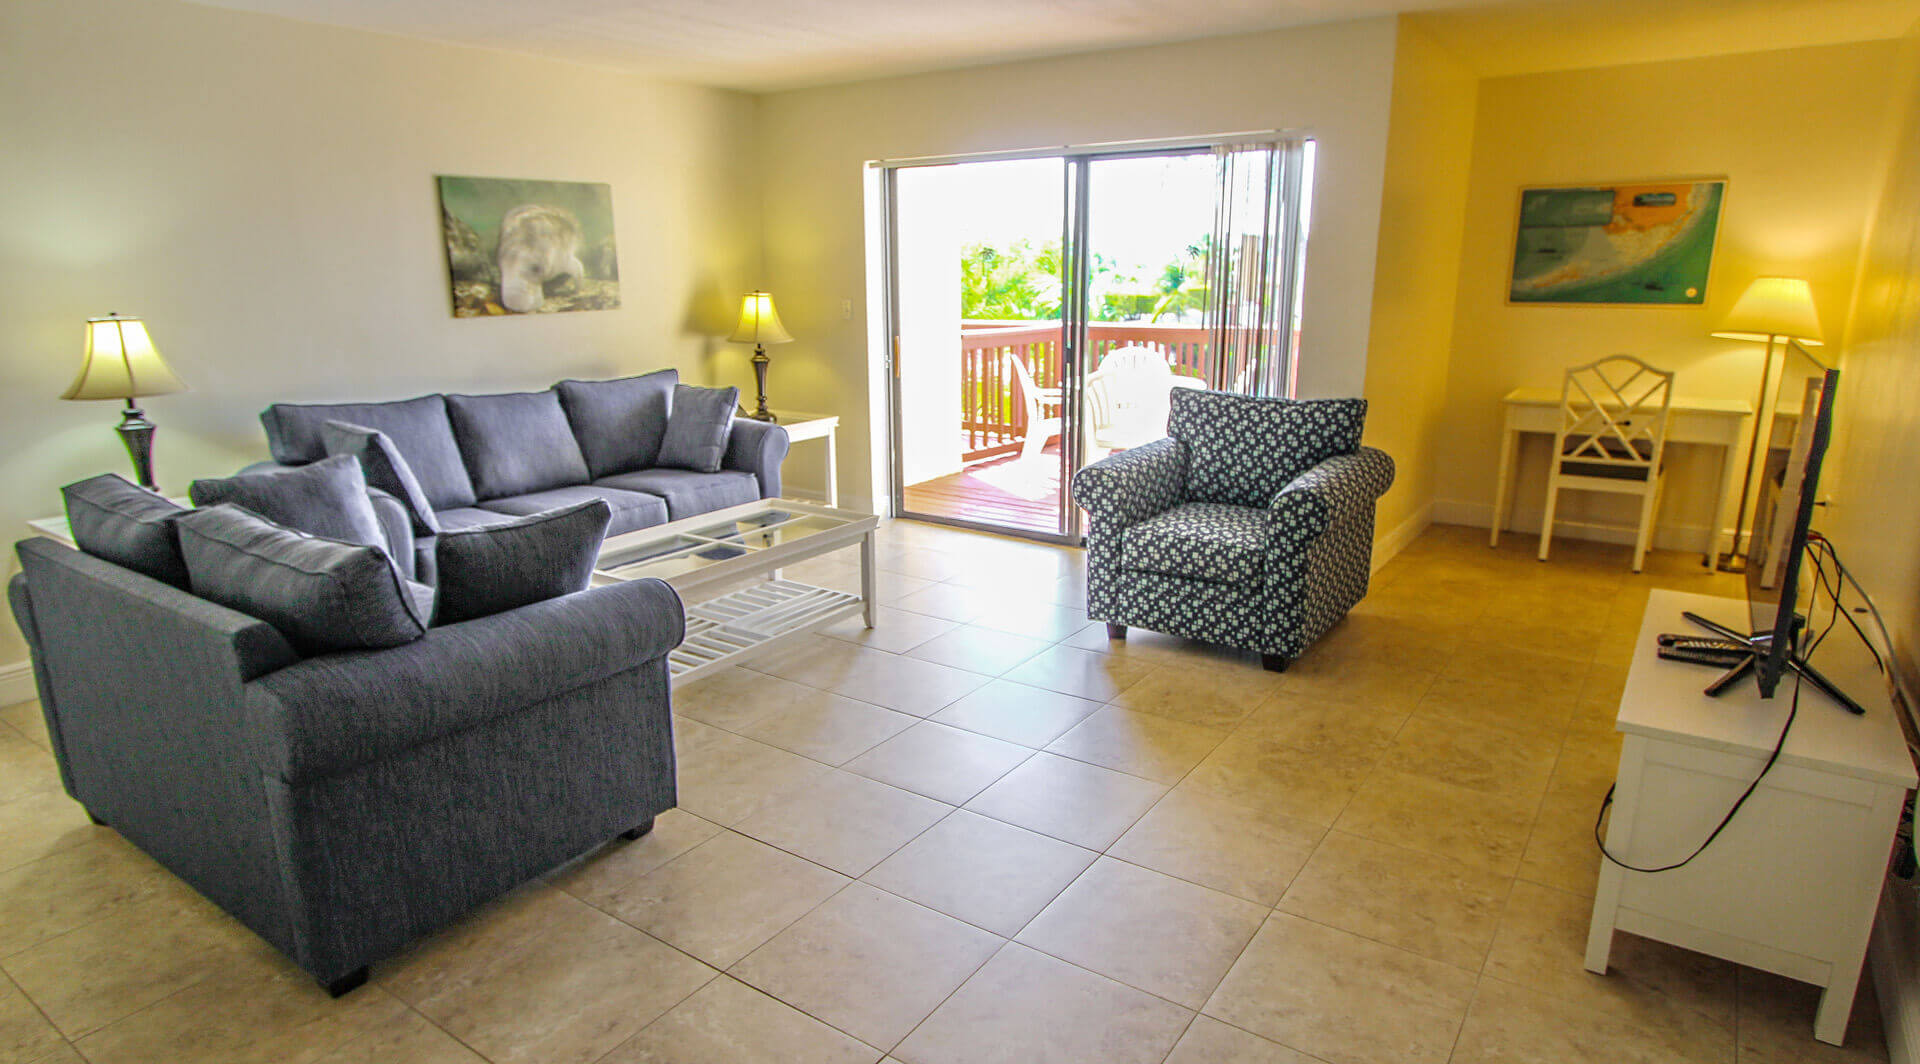 An expansive living room area at VRI's Florida Bay Club in Florida.